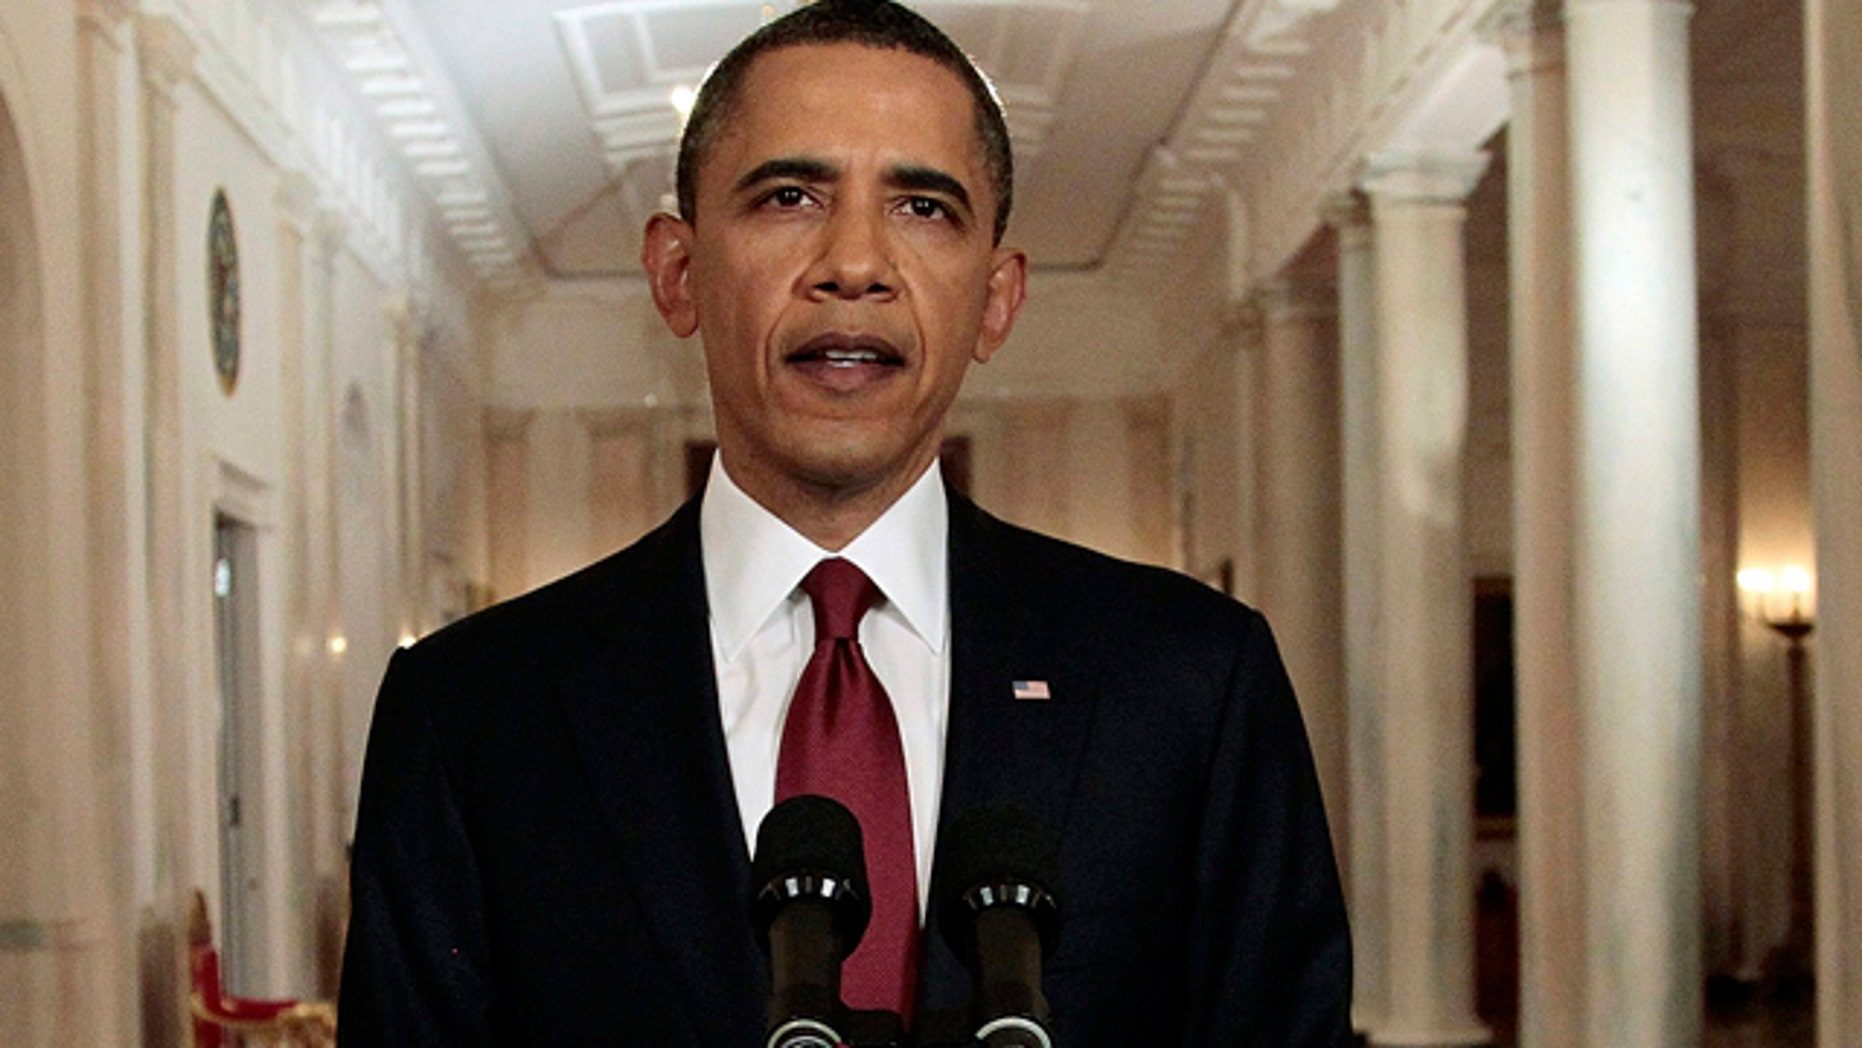 May 1: President Barack Obama reads his statement to photographers after making a televised statement on the death of Osama bin Laden from the East Room of the White House